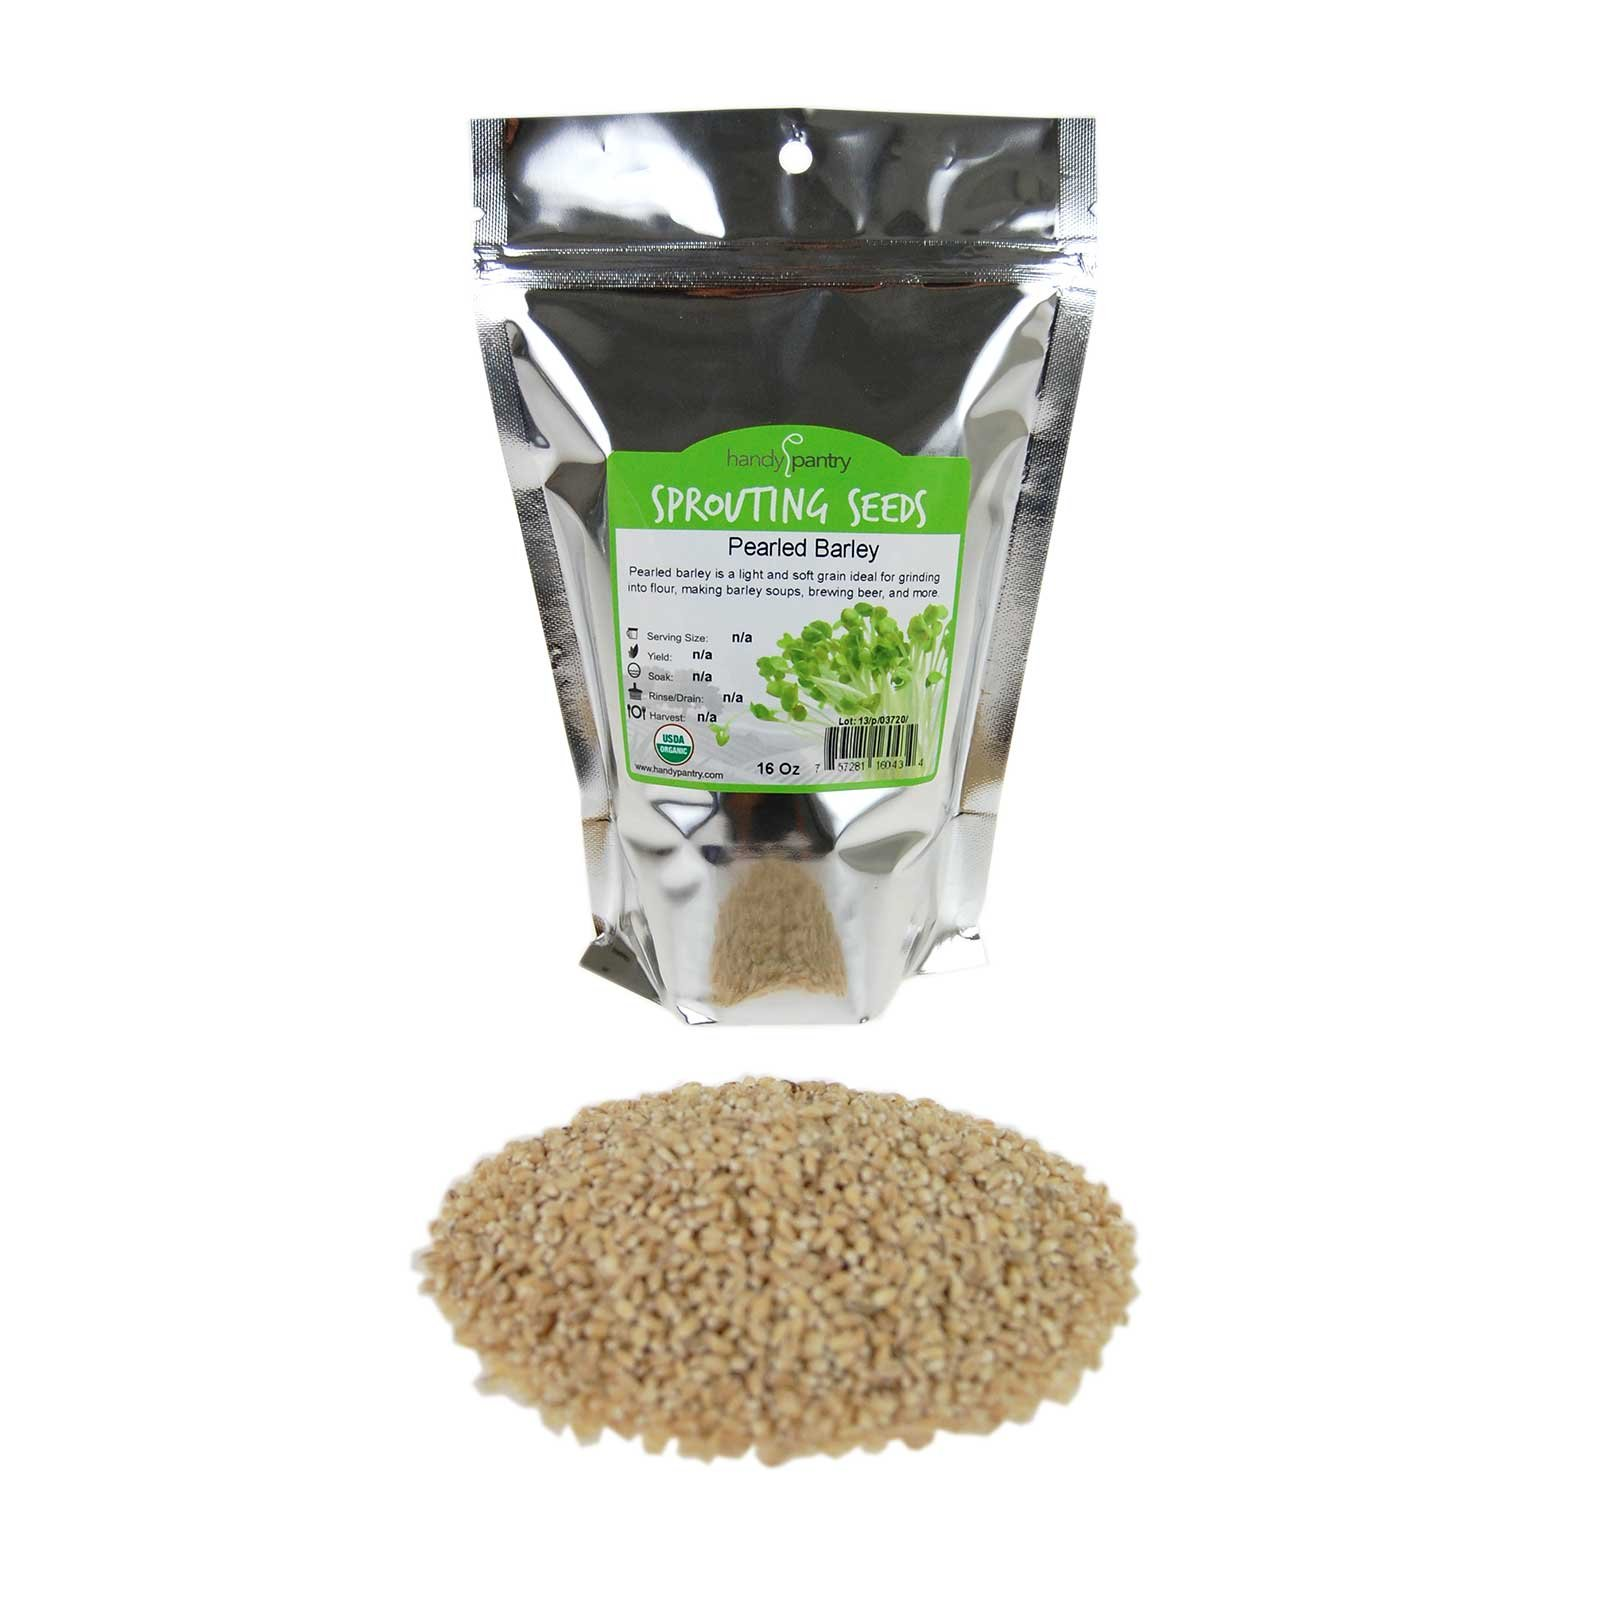 Organic Pearled Barley (Hulled) - 1 Lb Re-Sealable Package - Barley Grains for Flour, Bread, Beer Making Animal Feed, Food Storage & More by Handy Pantry